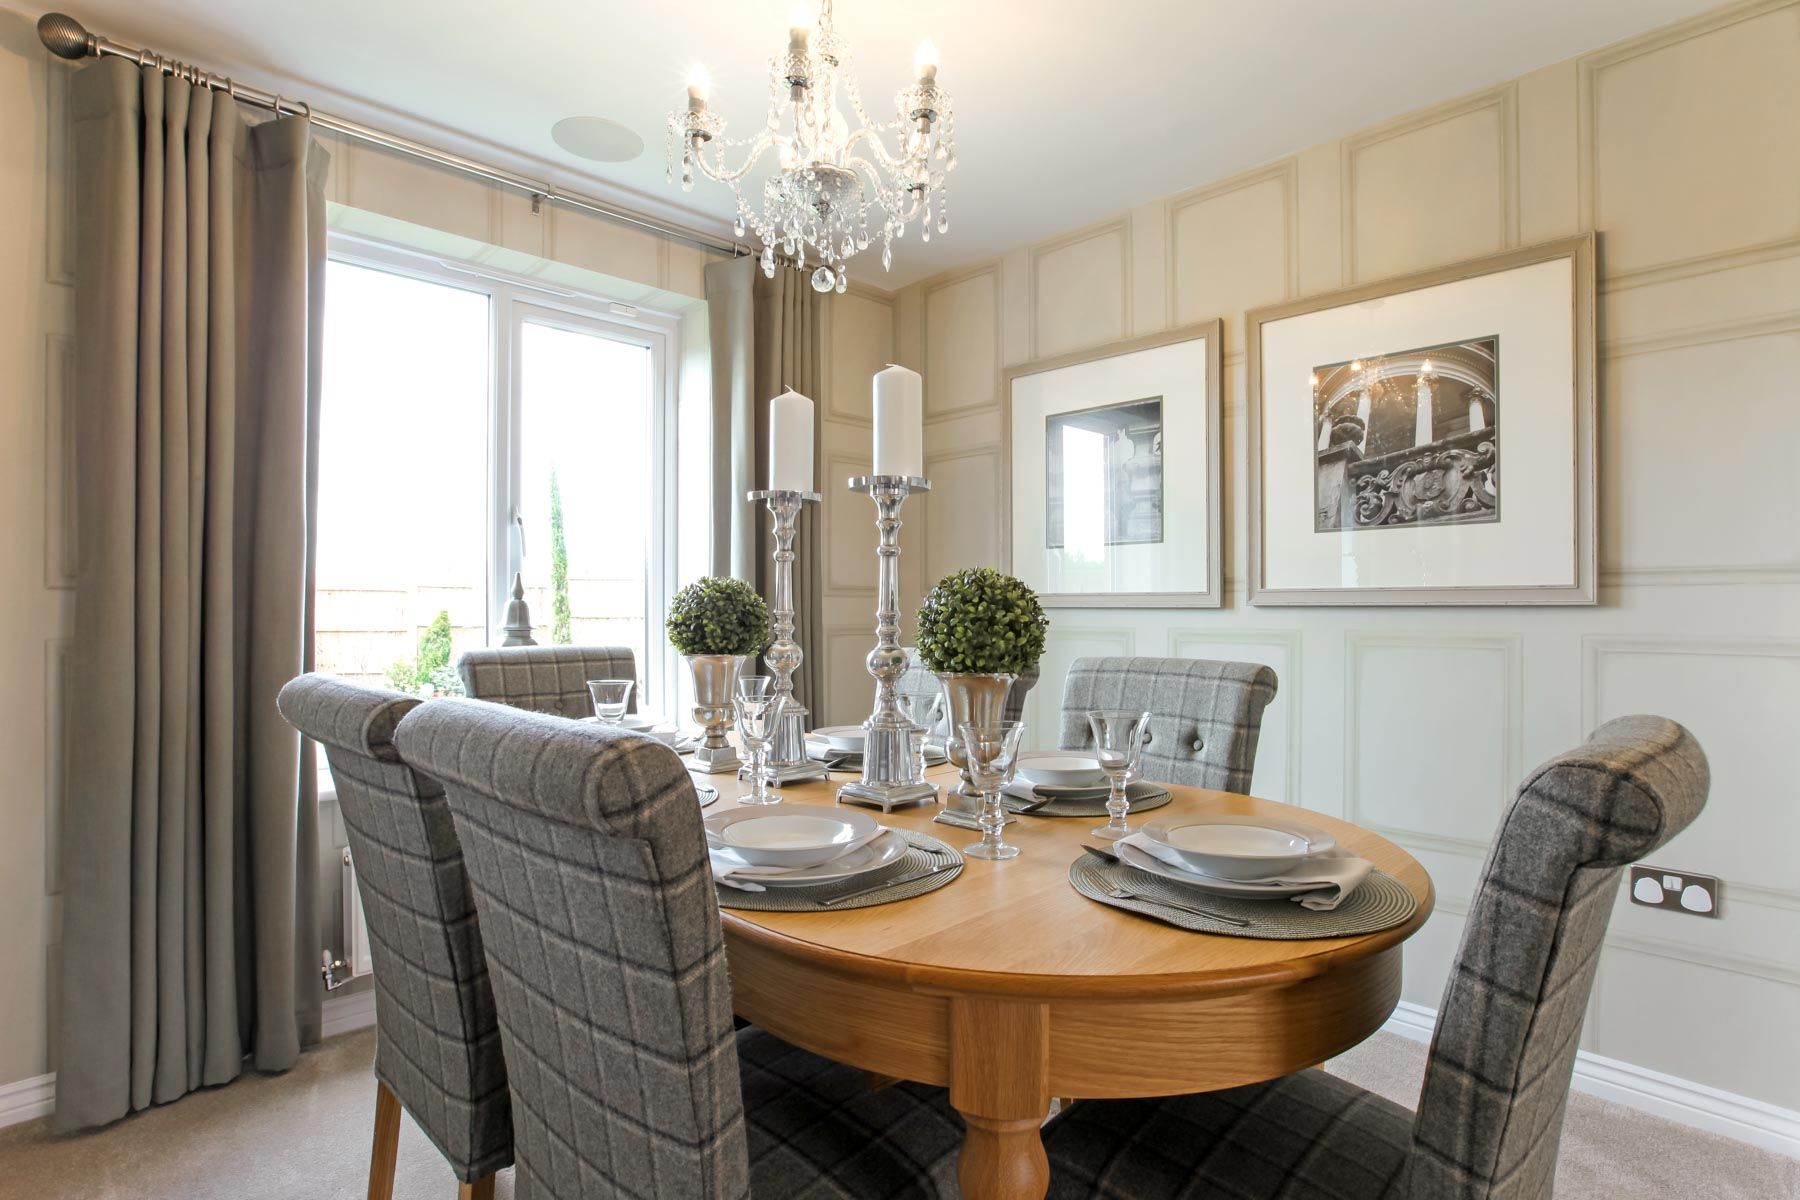 Eynsham_Dining_Room